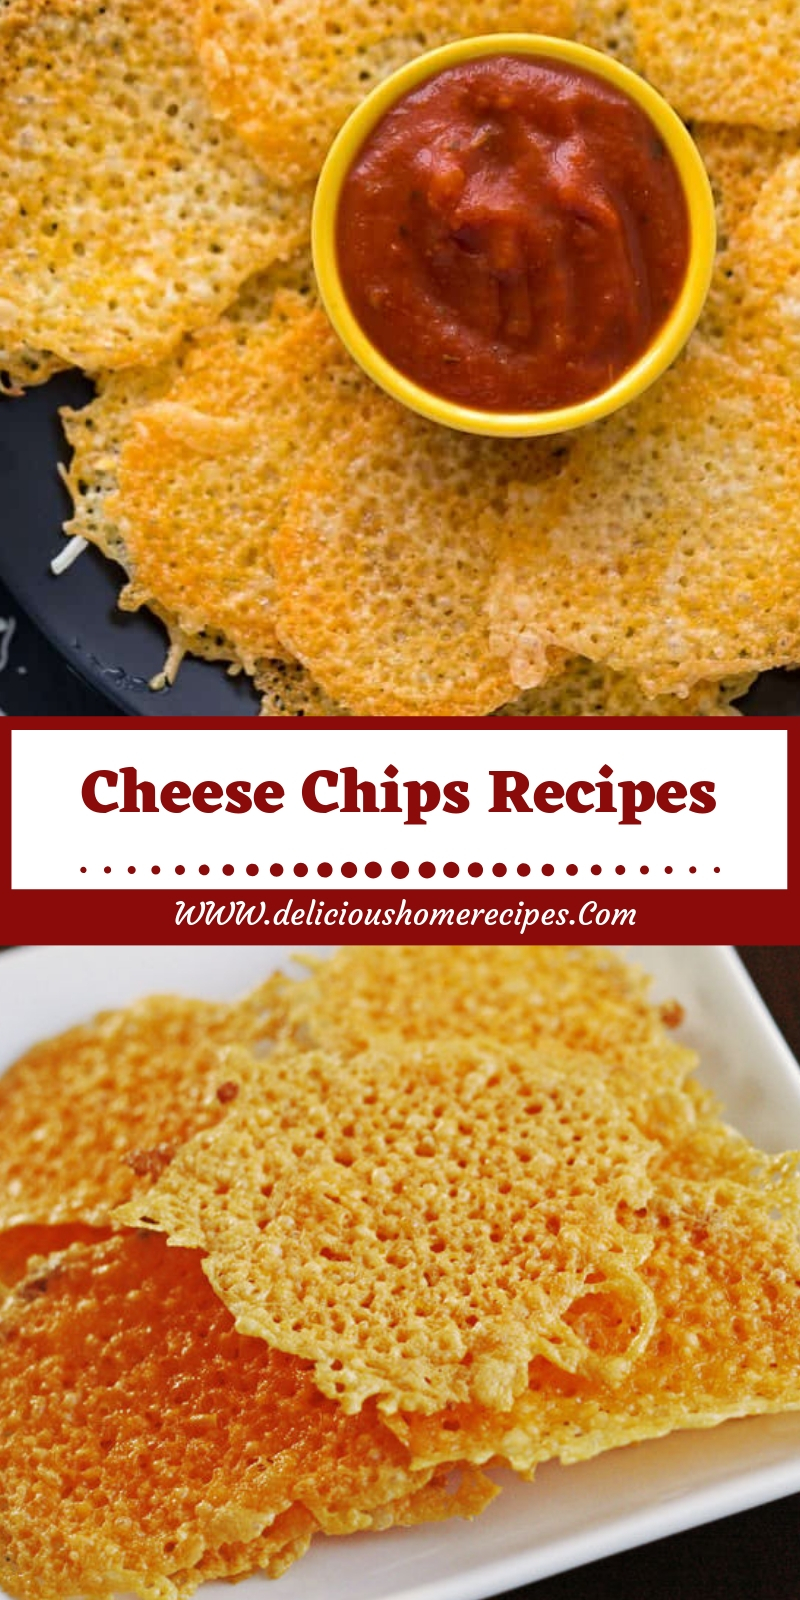 Cheese Chips Recipes